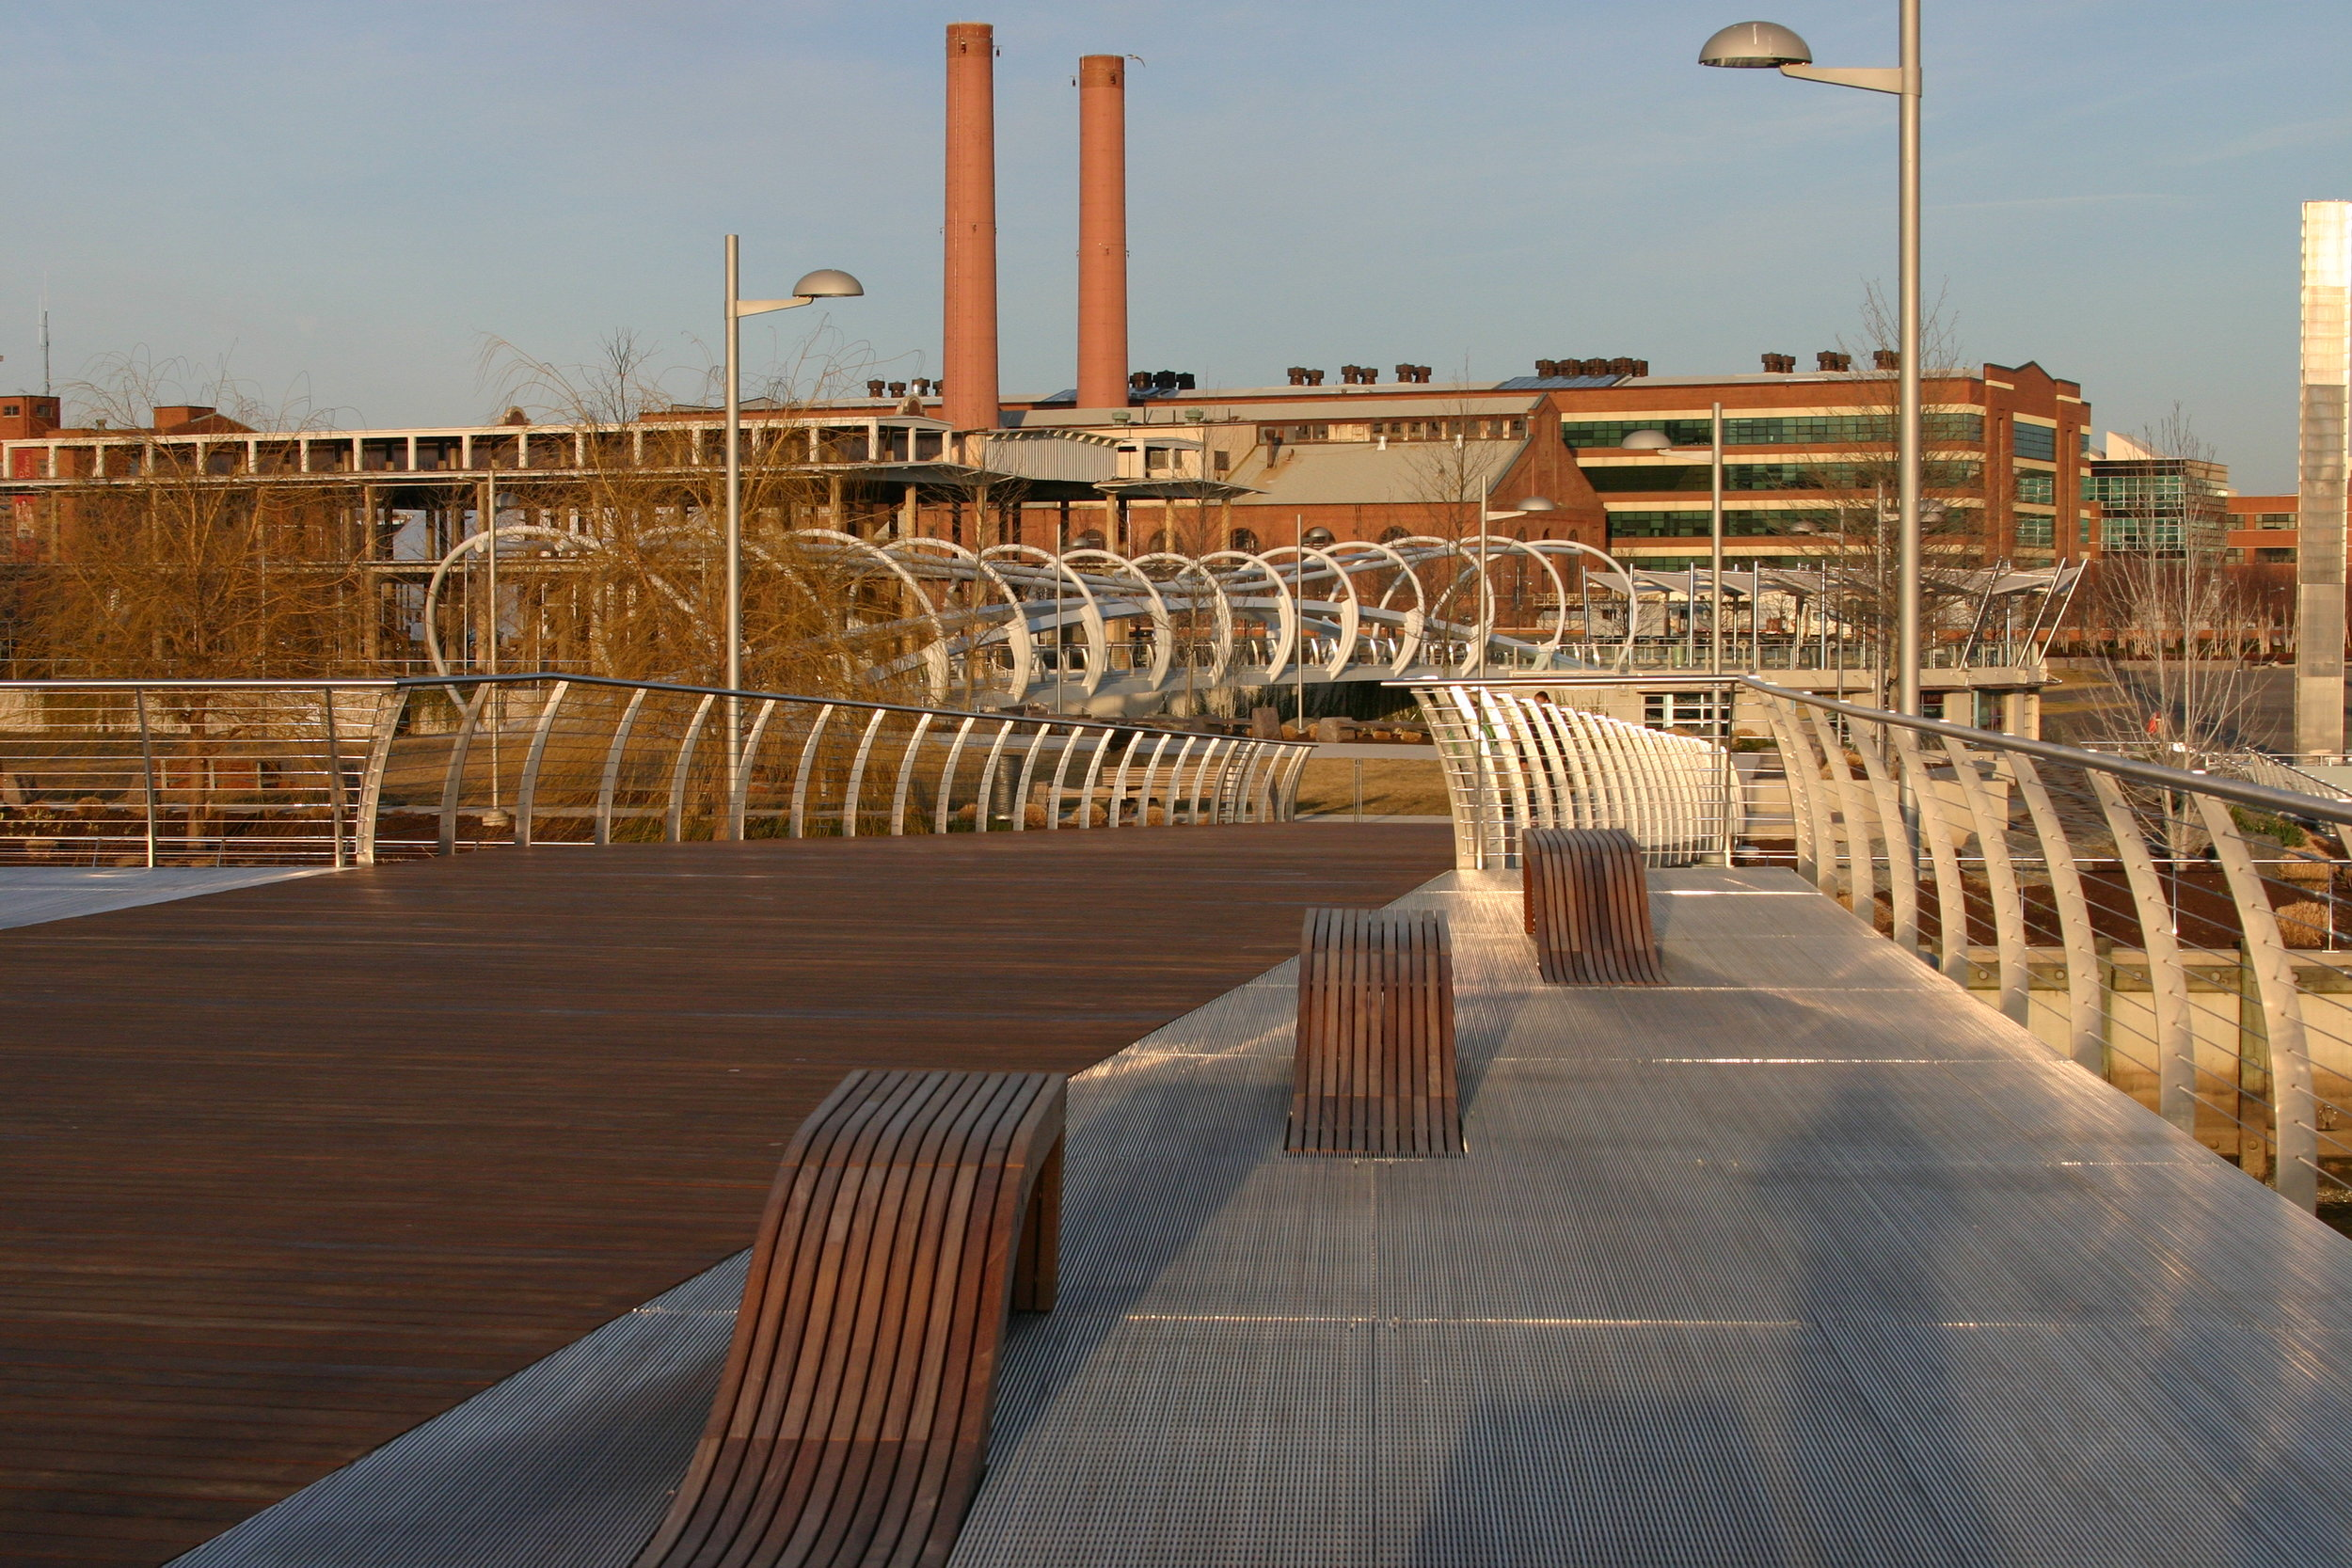 Navy Yard, Washington, DC, February 2012